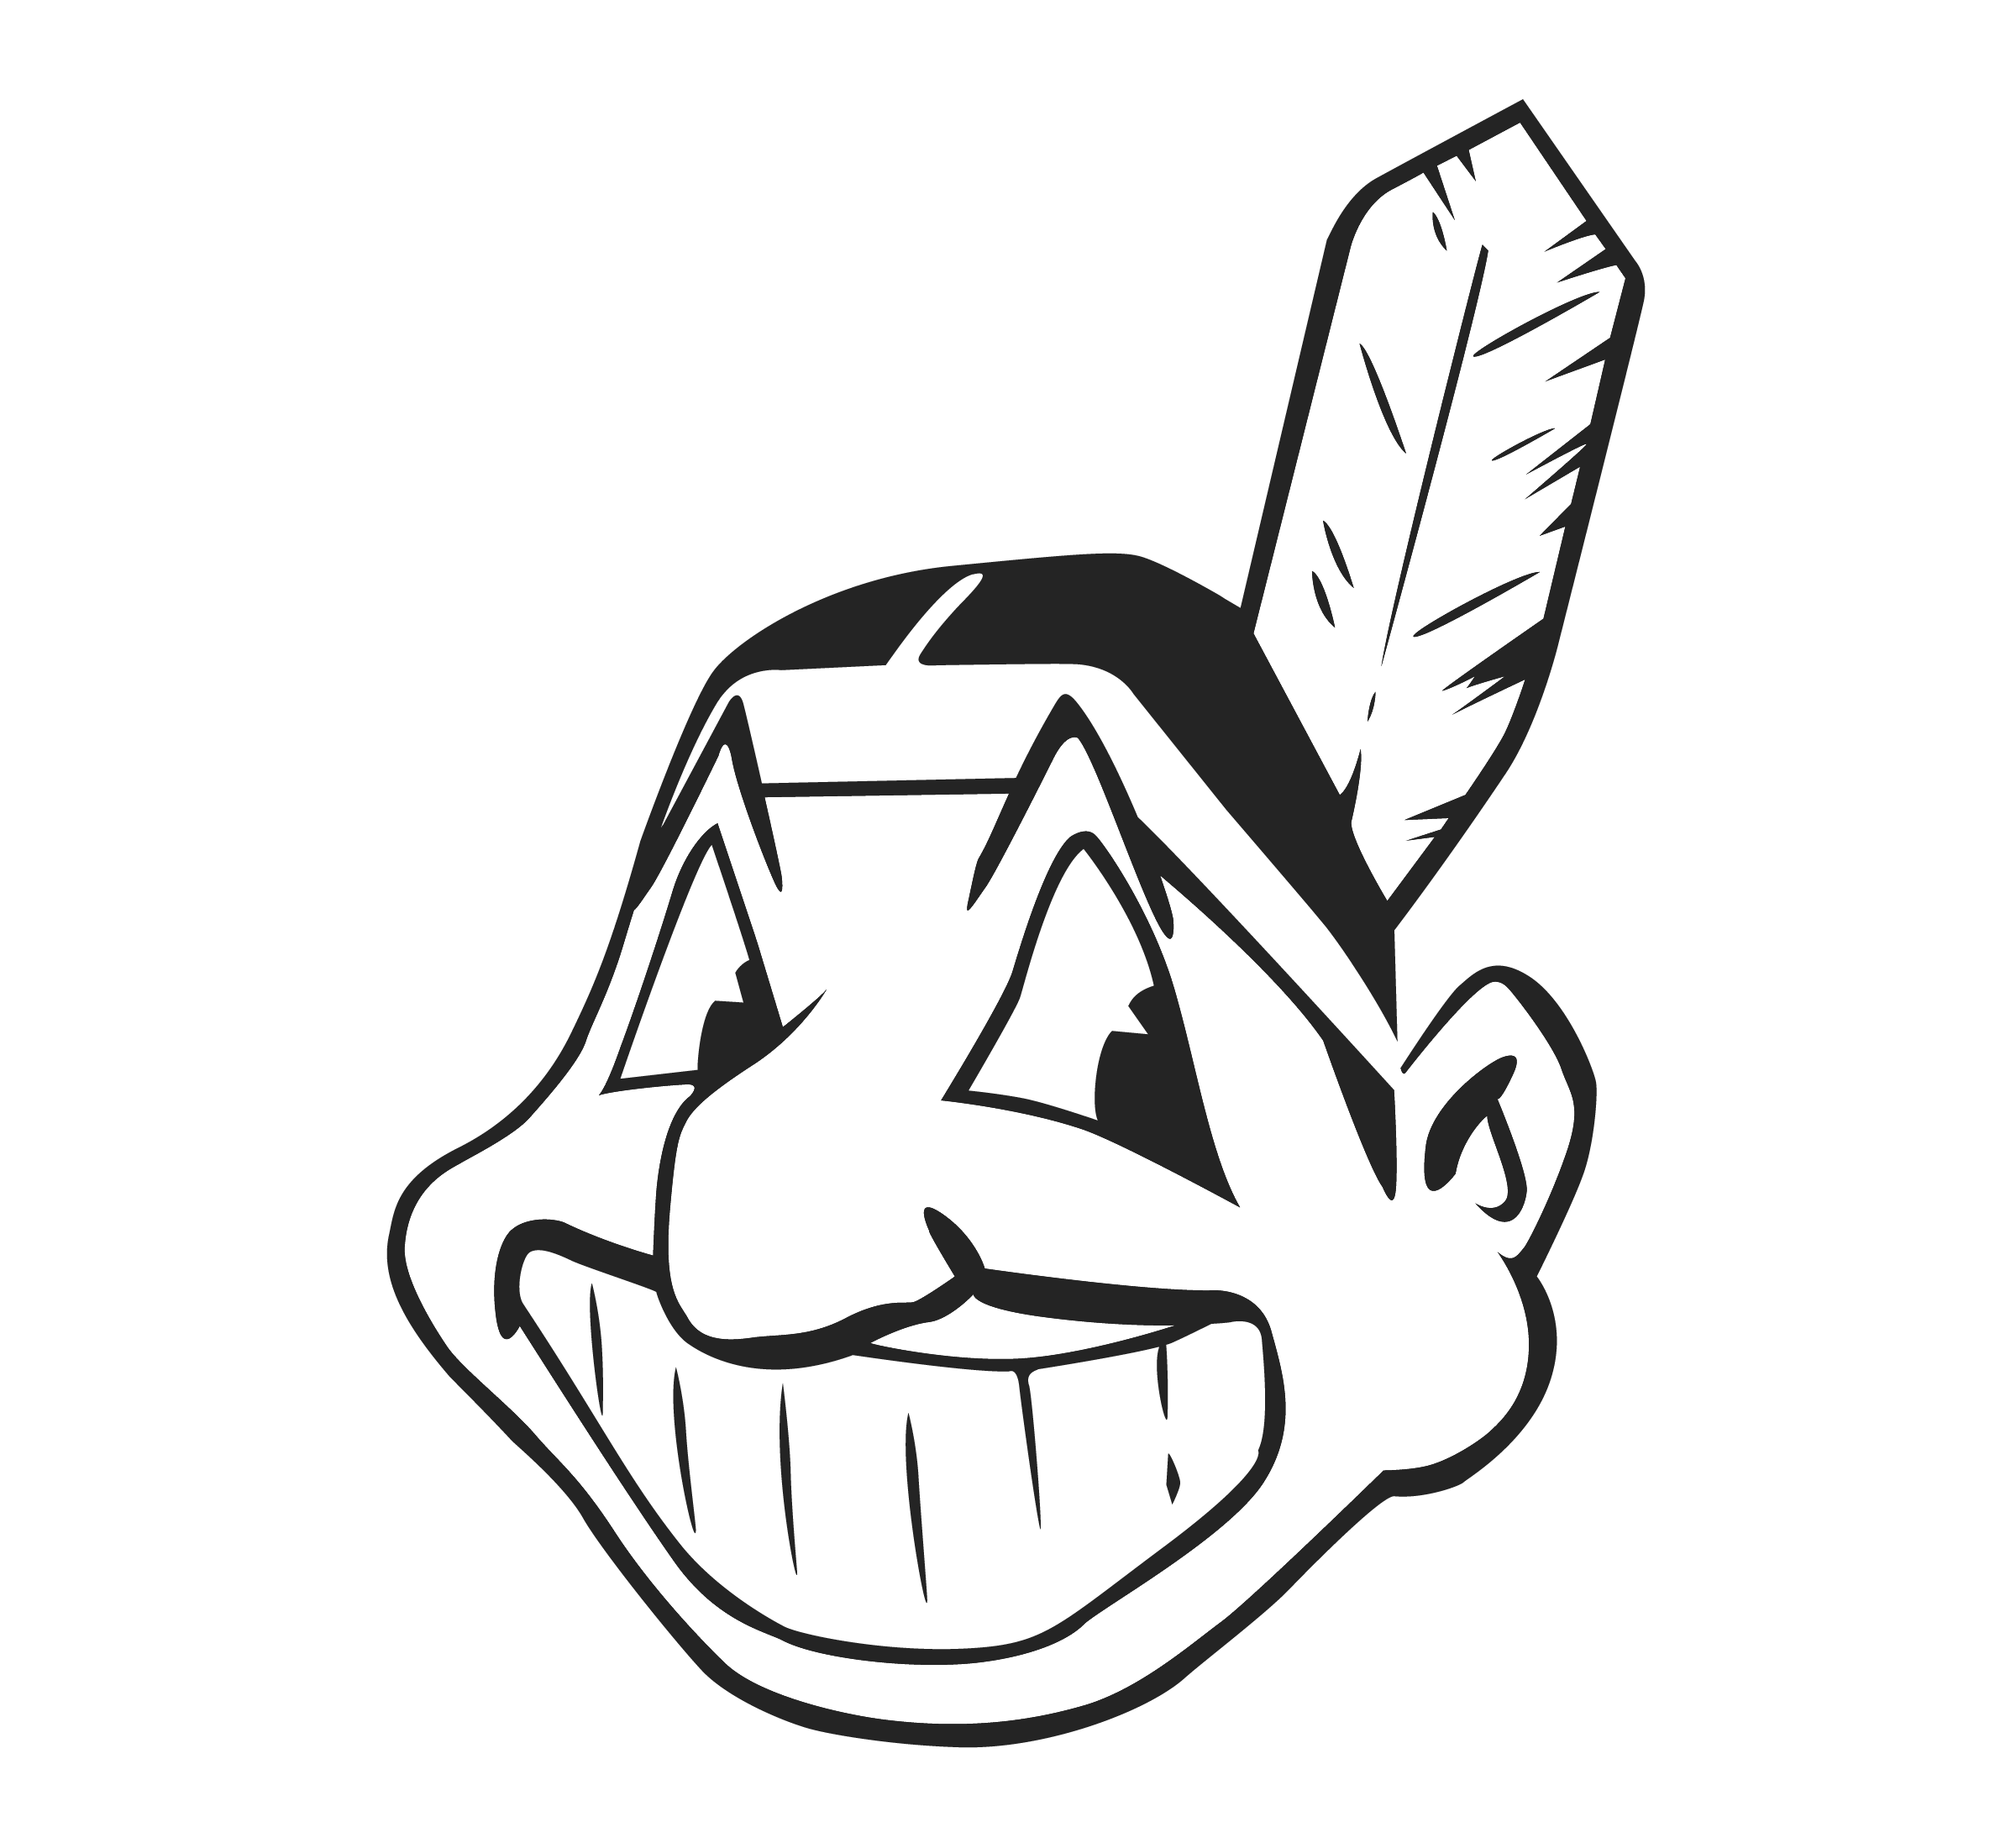 American Indians PNG Image Cleveland indians logo